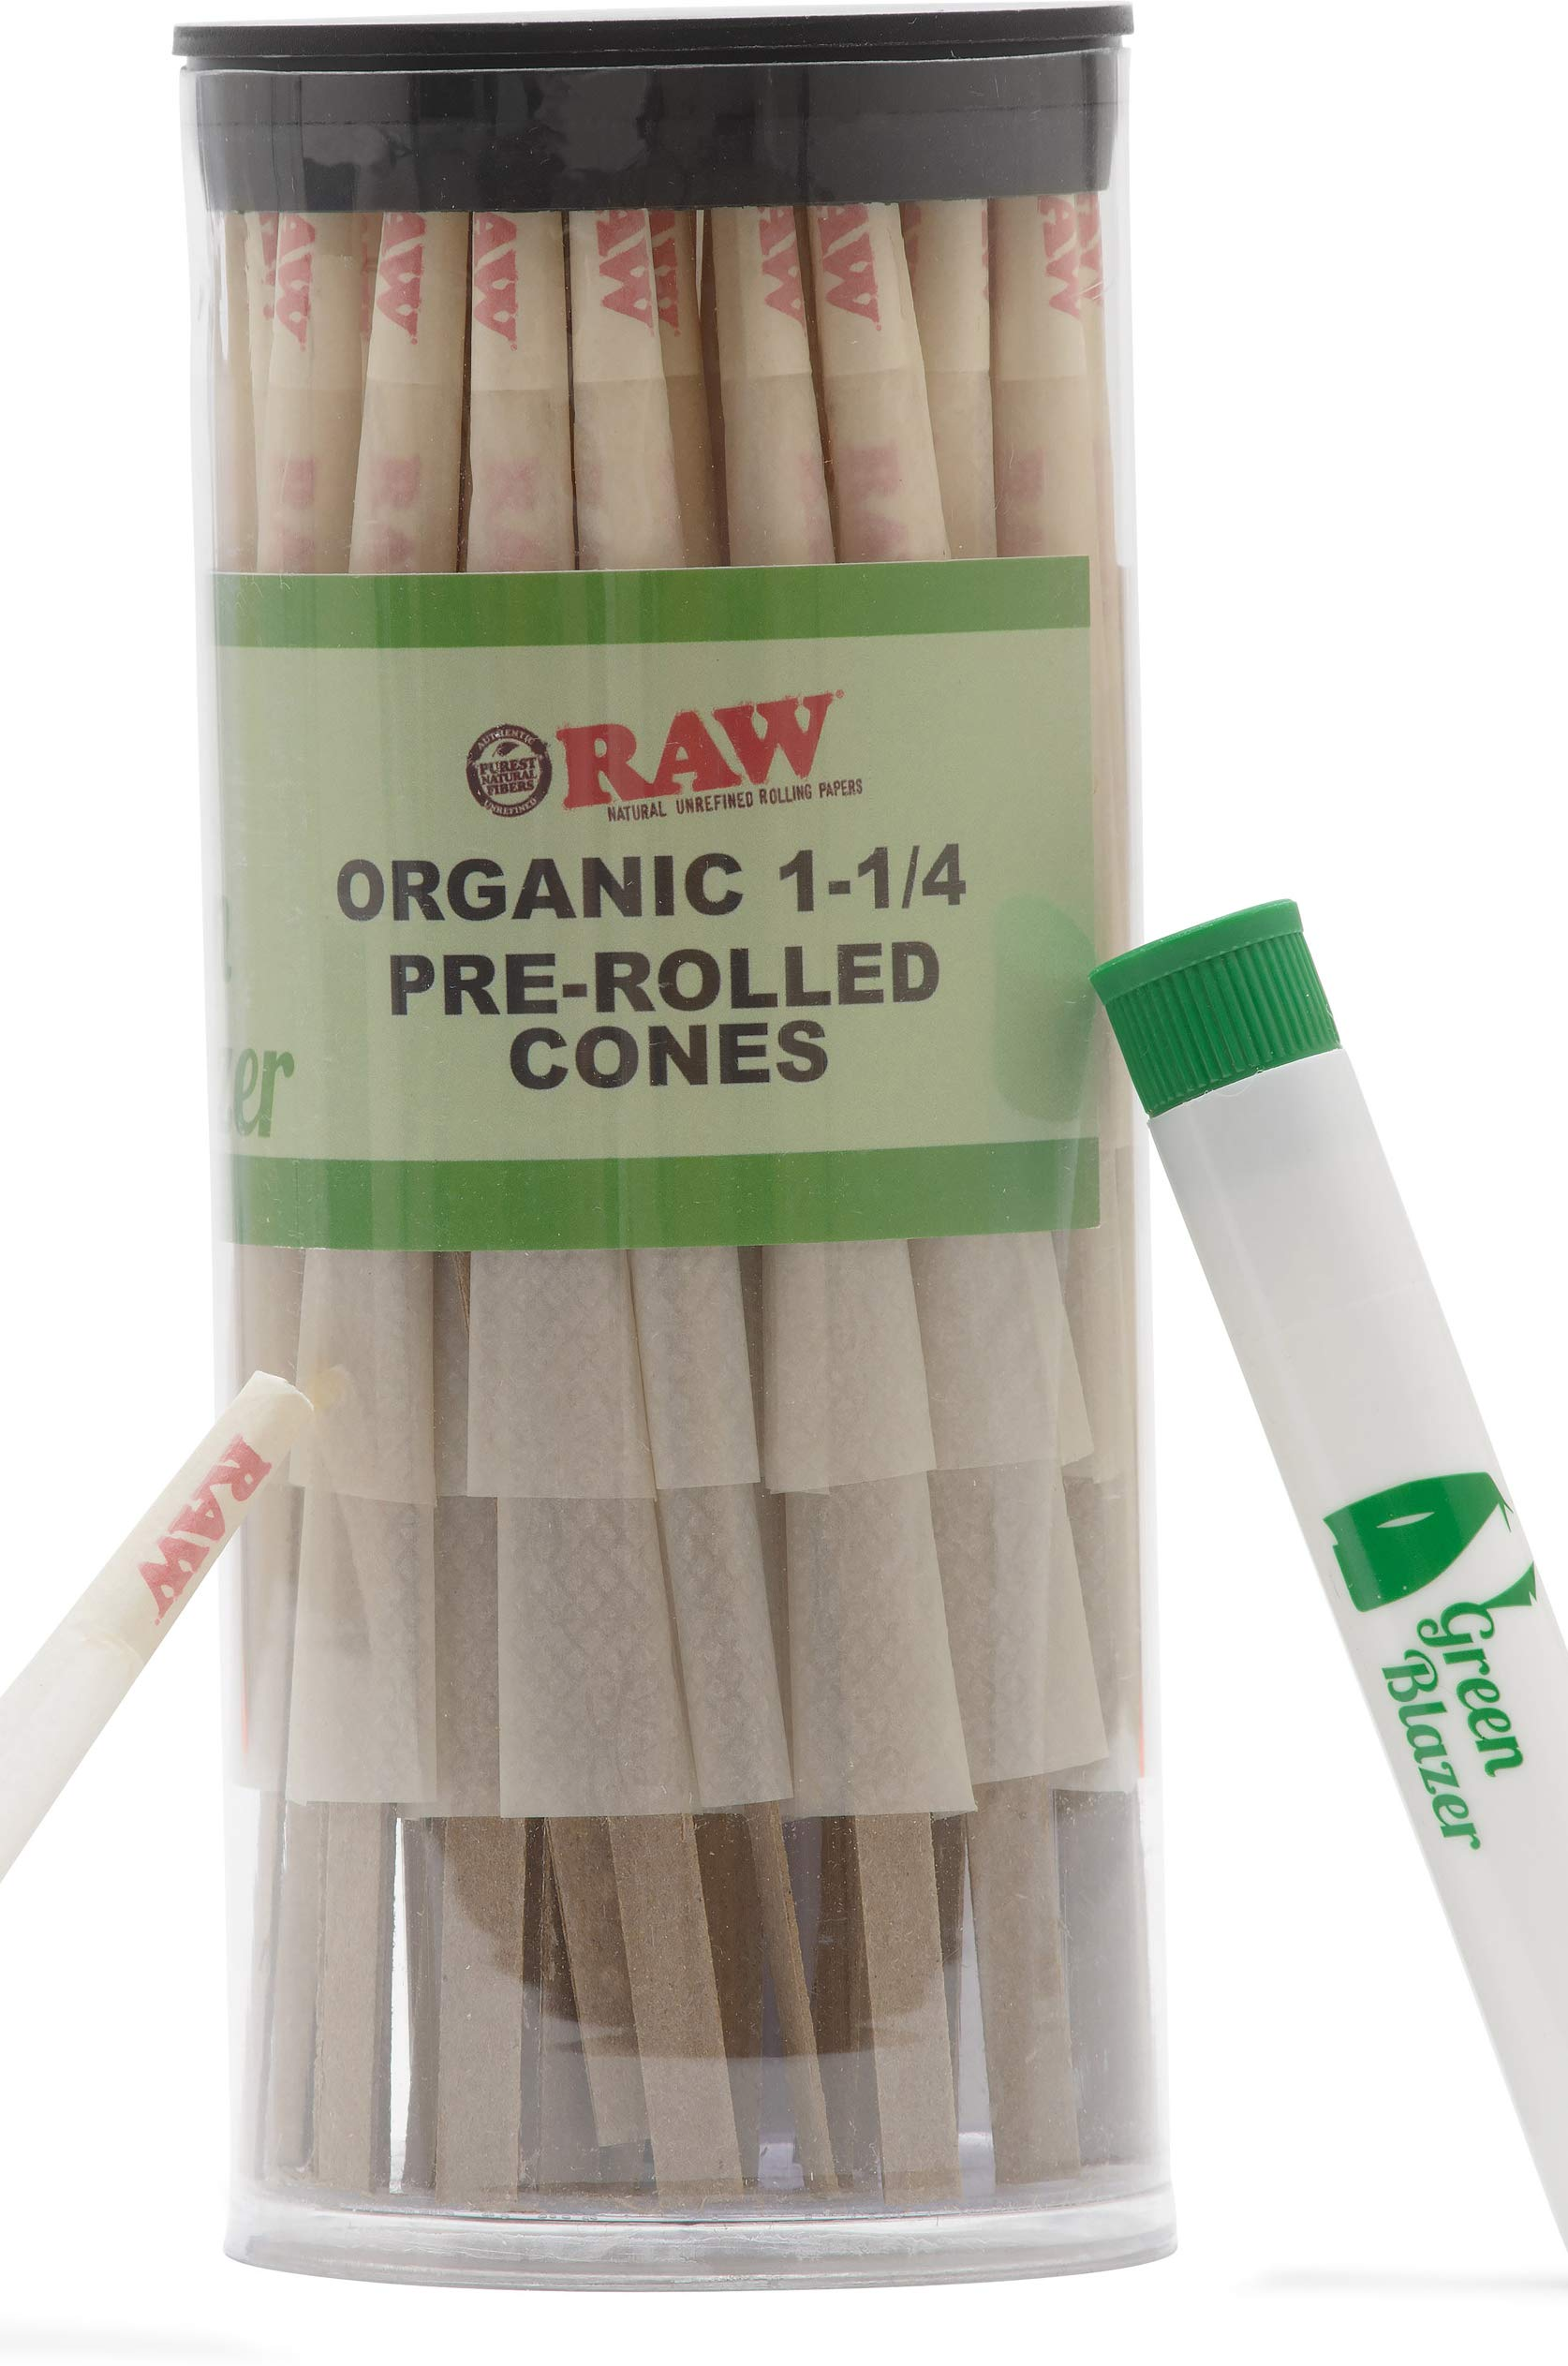 Raw Pre-Rolled Cones Organic 1 1/4: 100 Pack - Hemp Rolling Papers with Filters - Extra Clean and Slow Burning Cone Made of Pure Hemp - Doob Tube Included